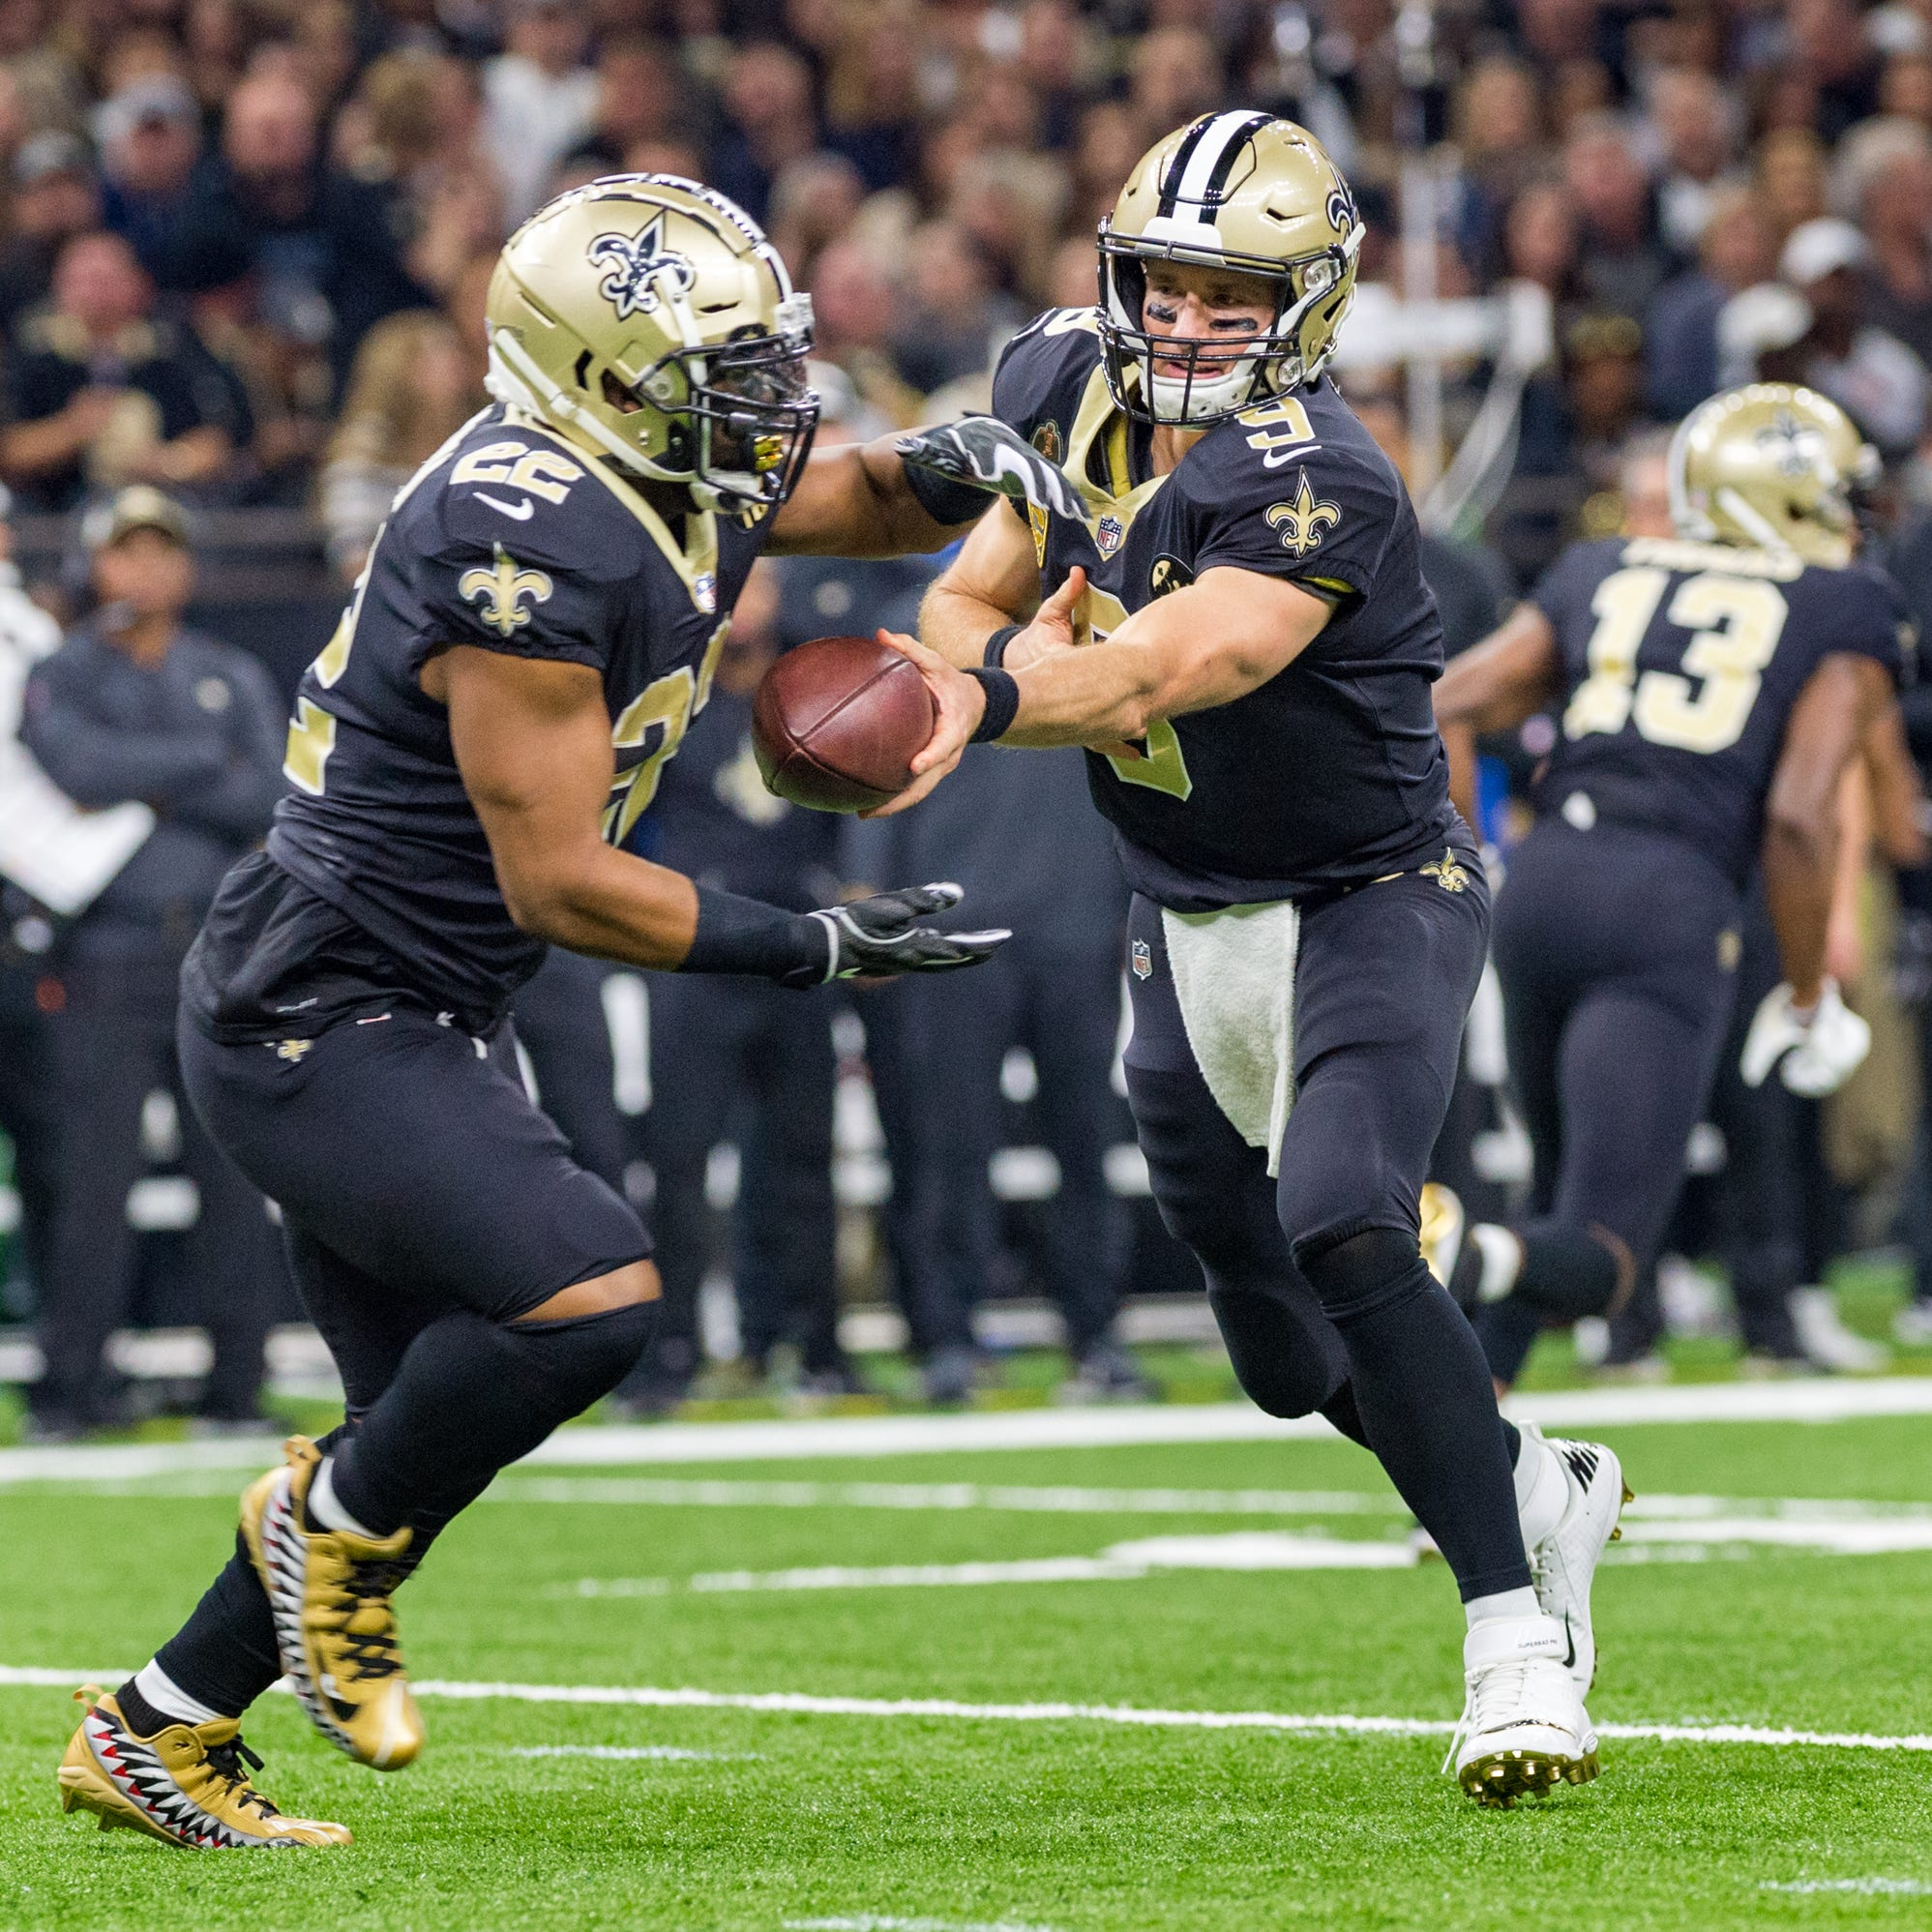 Road to Super Bowl might run through New Orleans